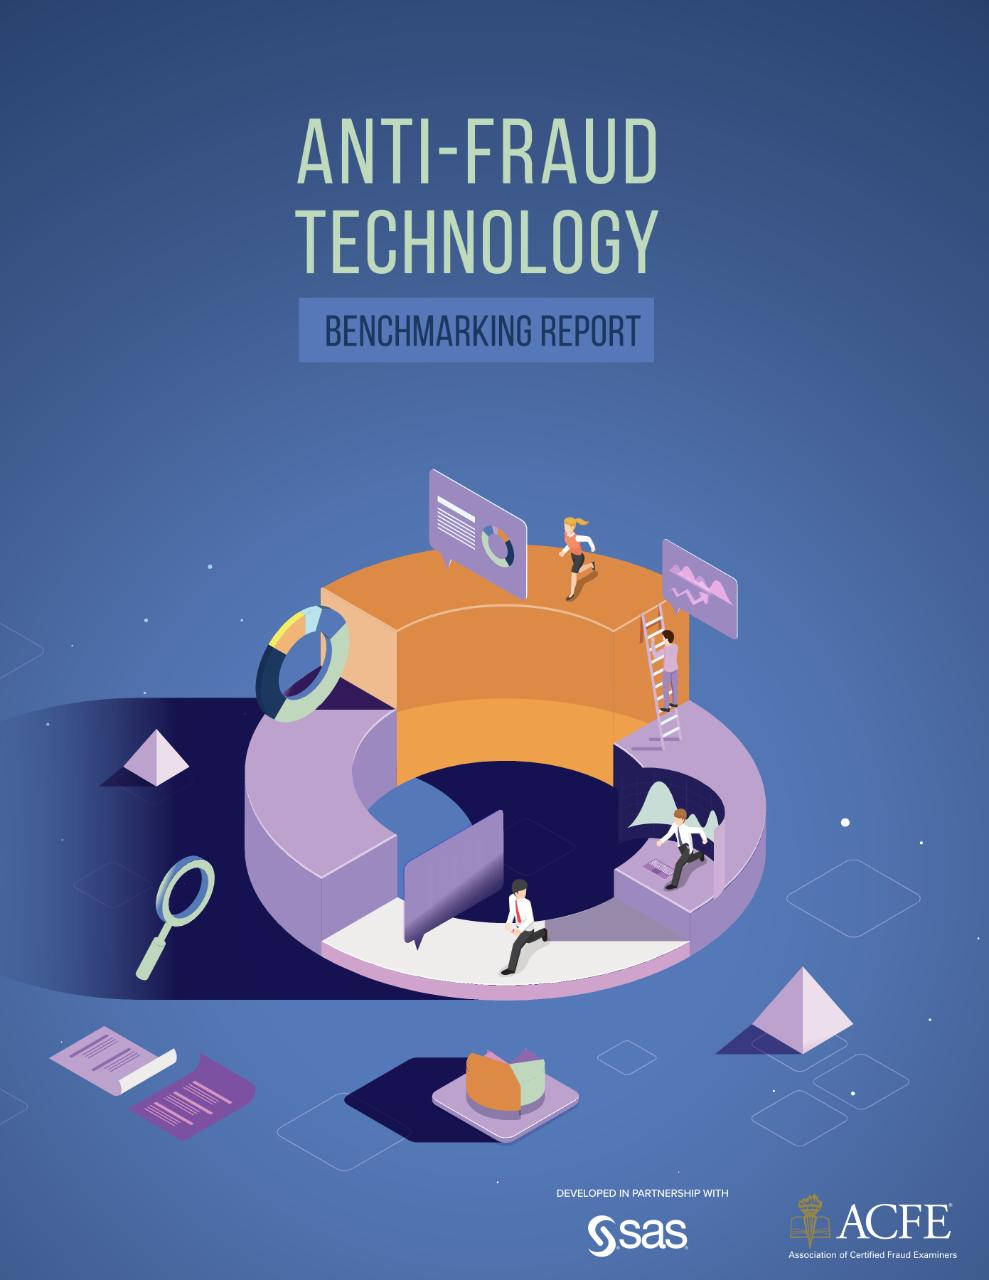 Anti-Fraud Technology Benchmarking Report